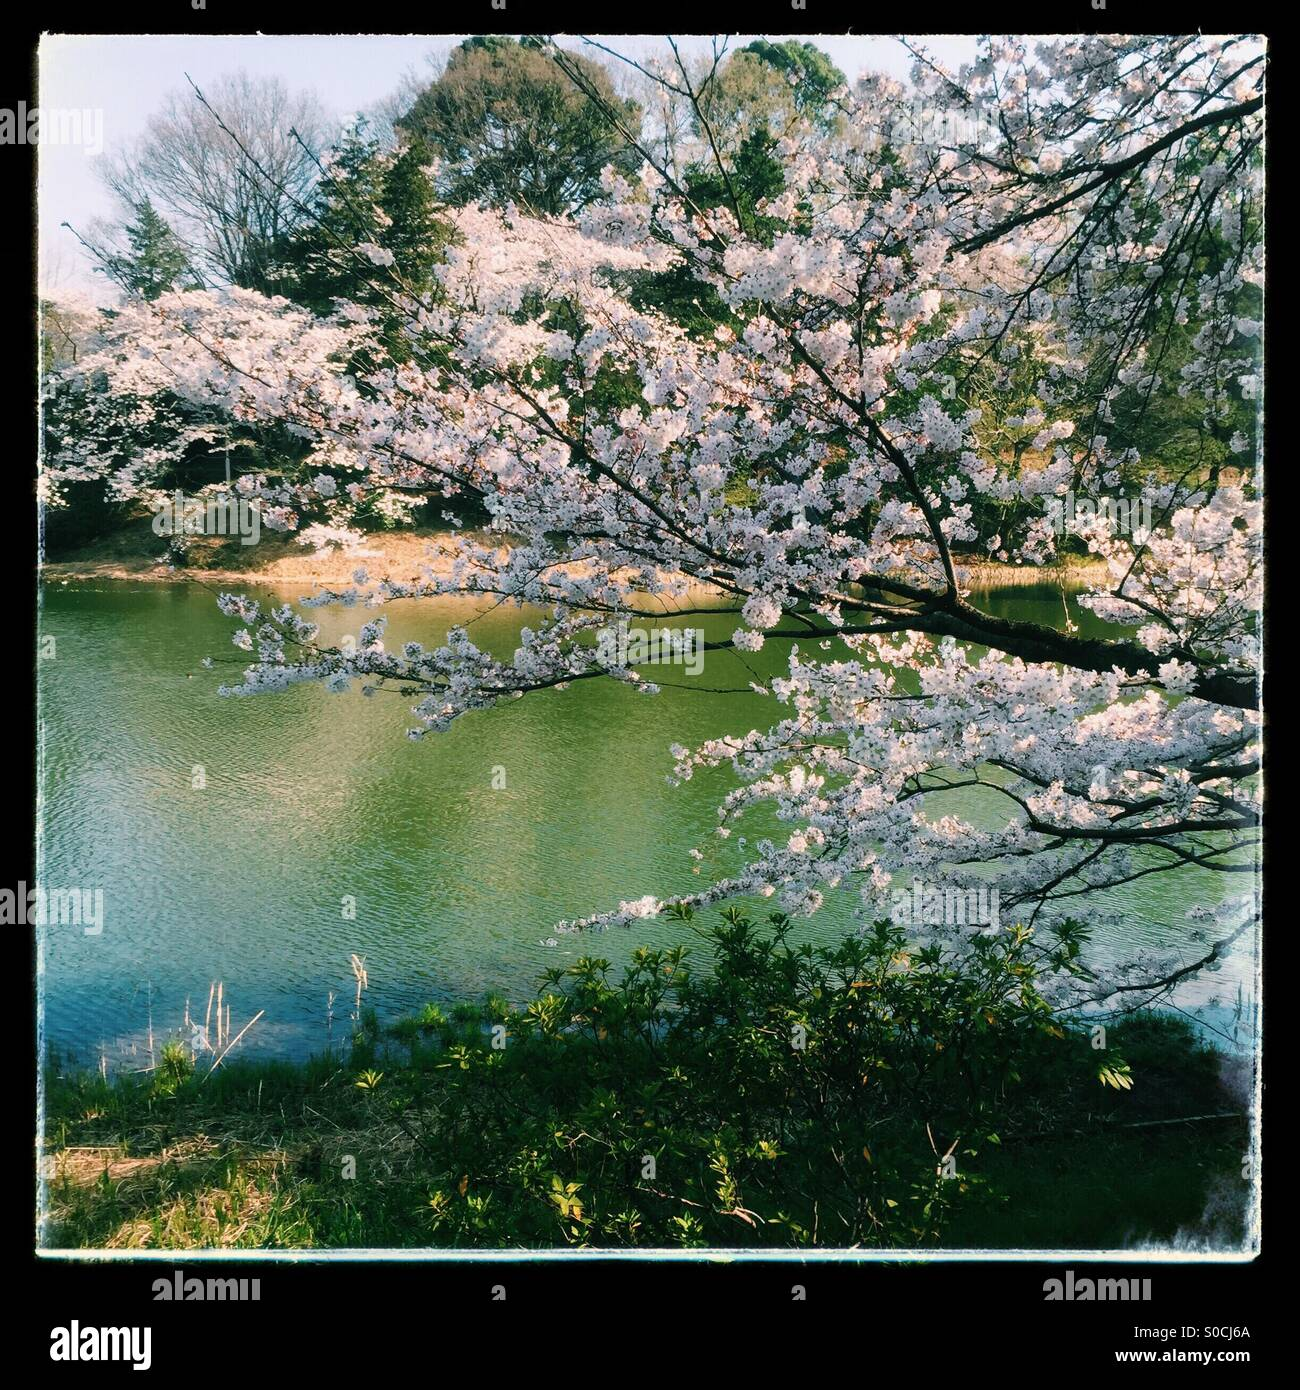 Lovely pond in Spring with white cherry blossoms. Black vintage frame. - Stock Image